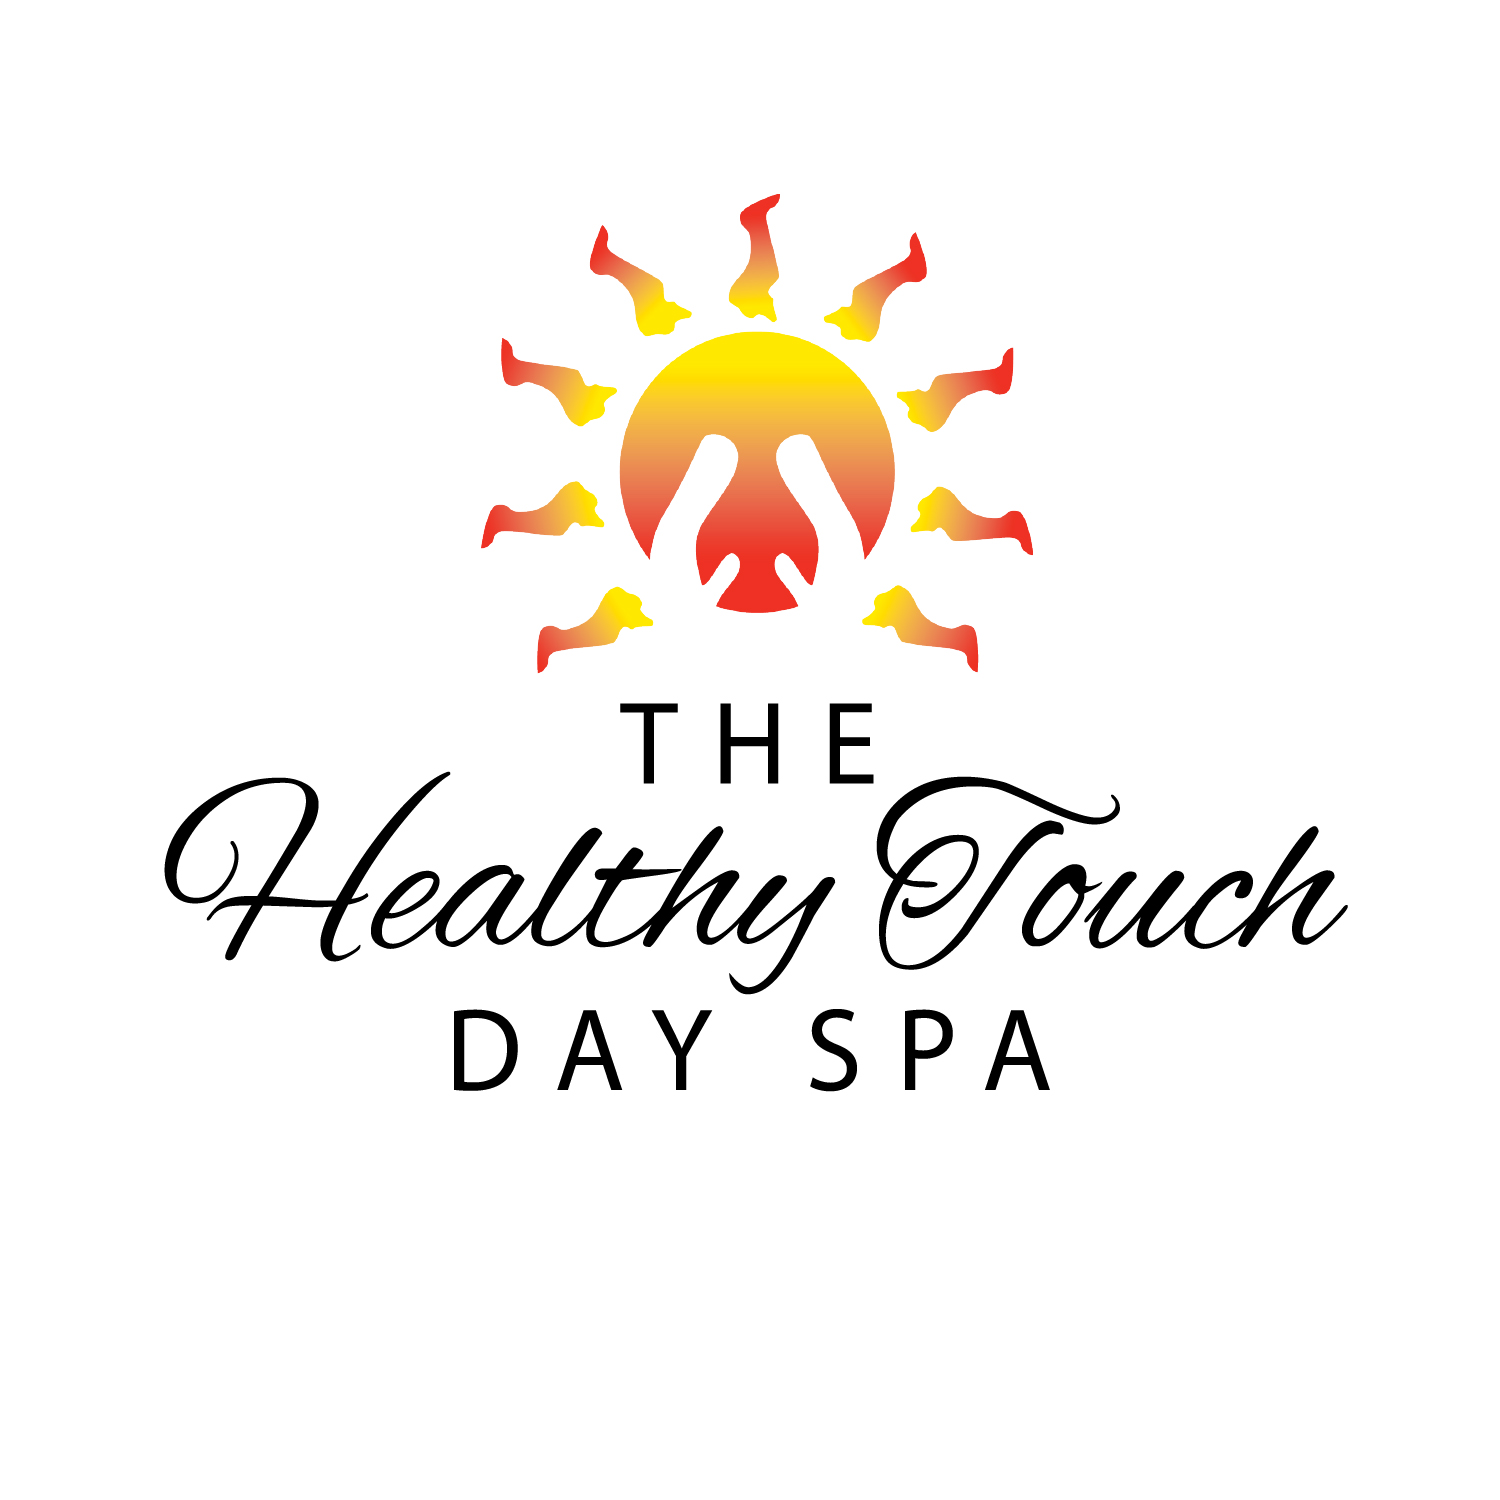 The Healthy Touch Day Spa